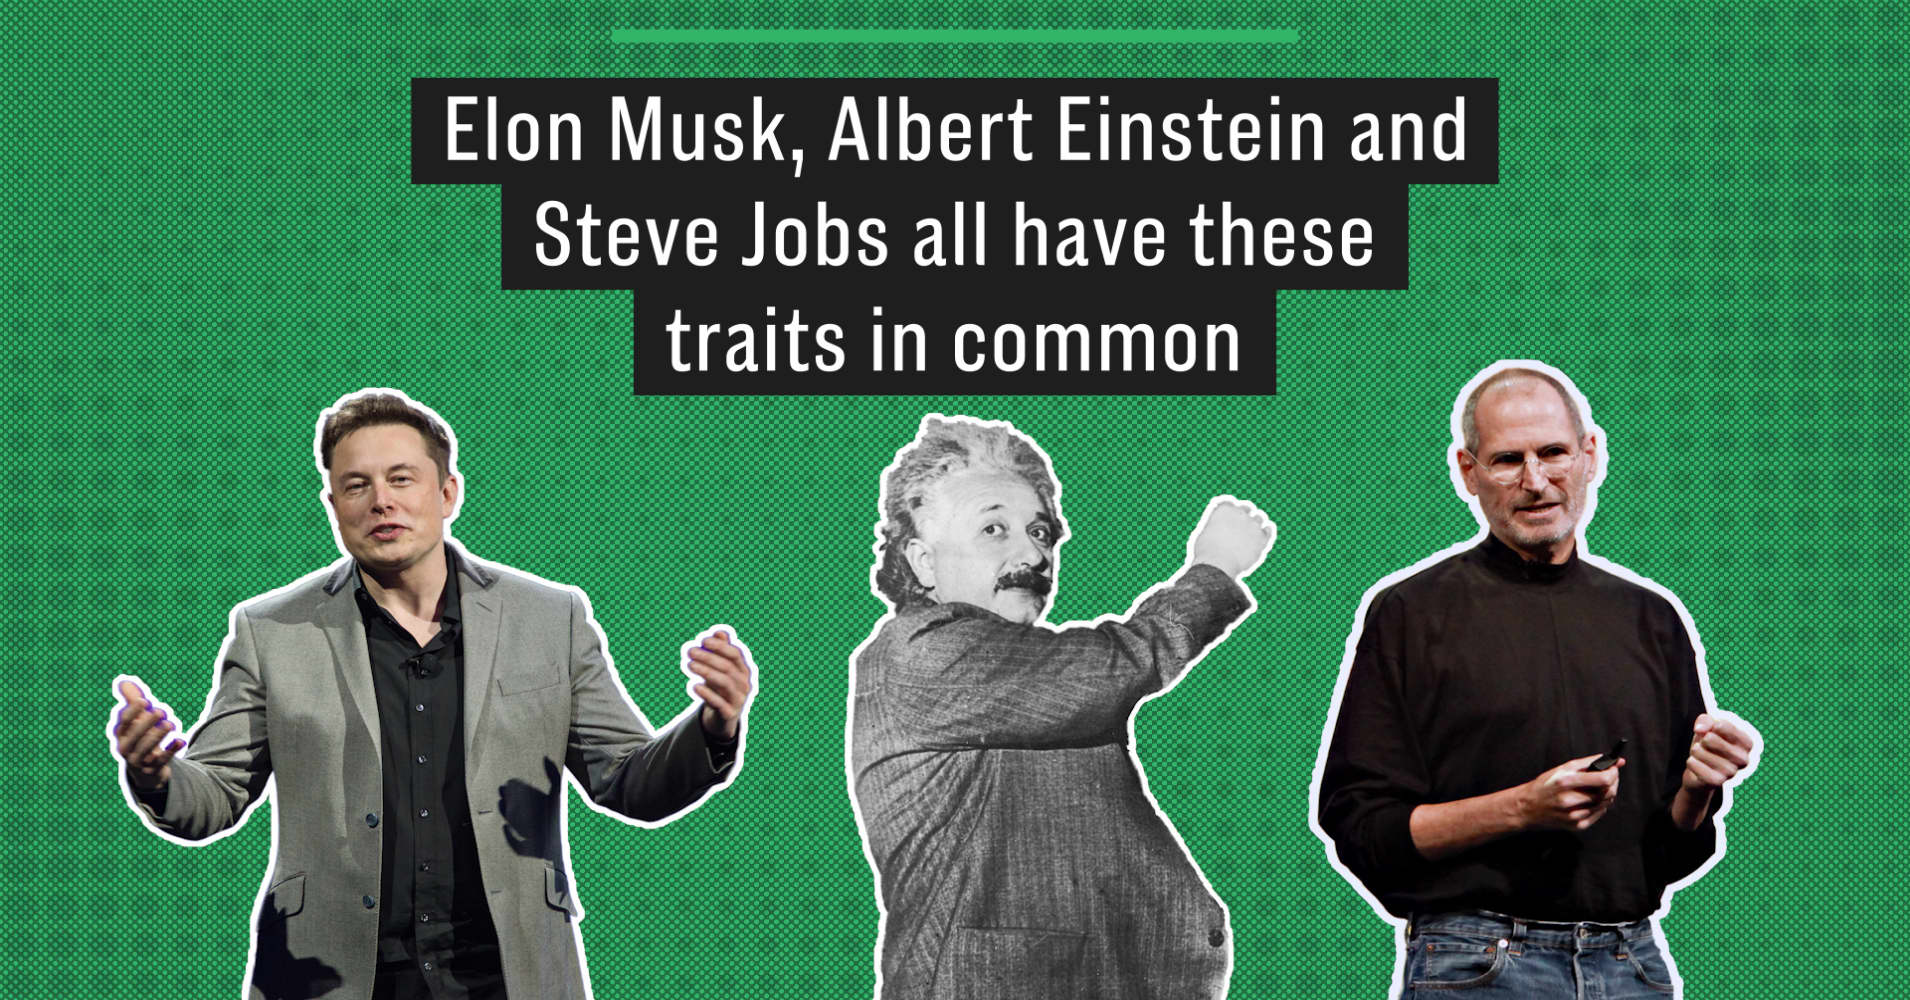 Elon Musk Albert Einstein And Steve Jobs All Have These Traits In